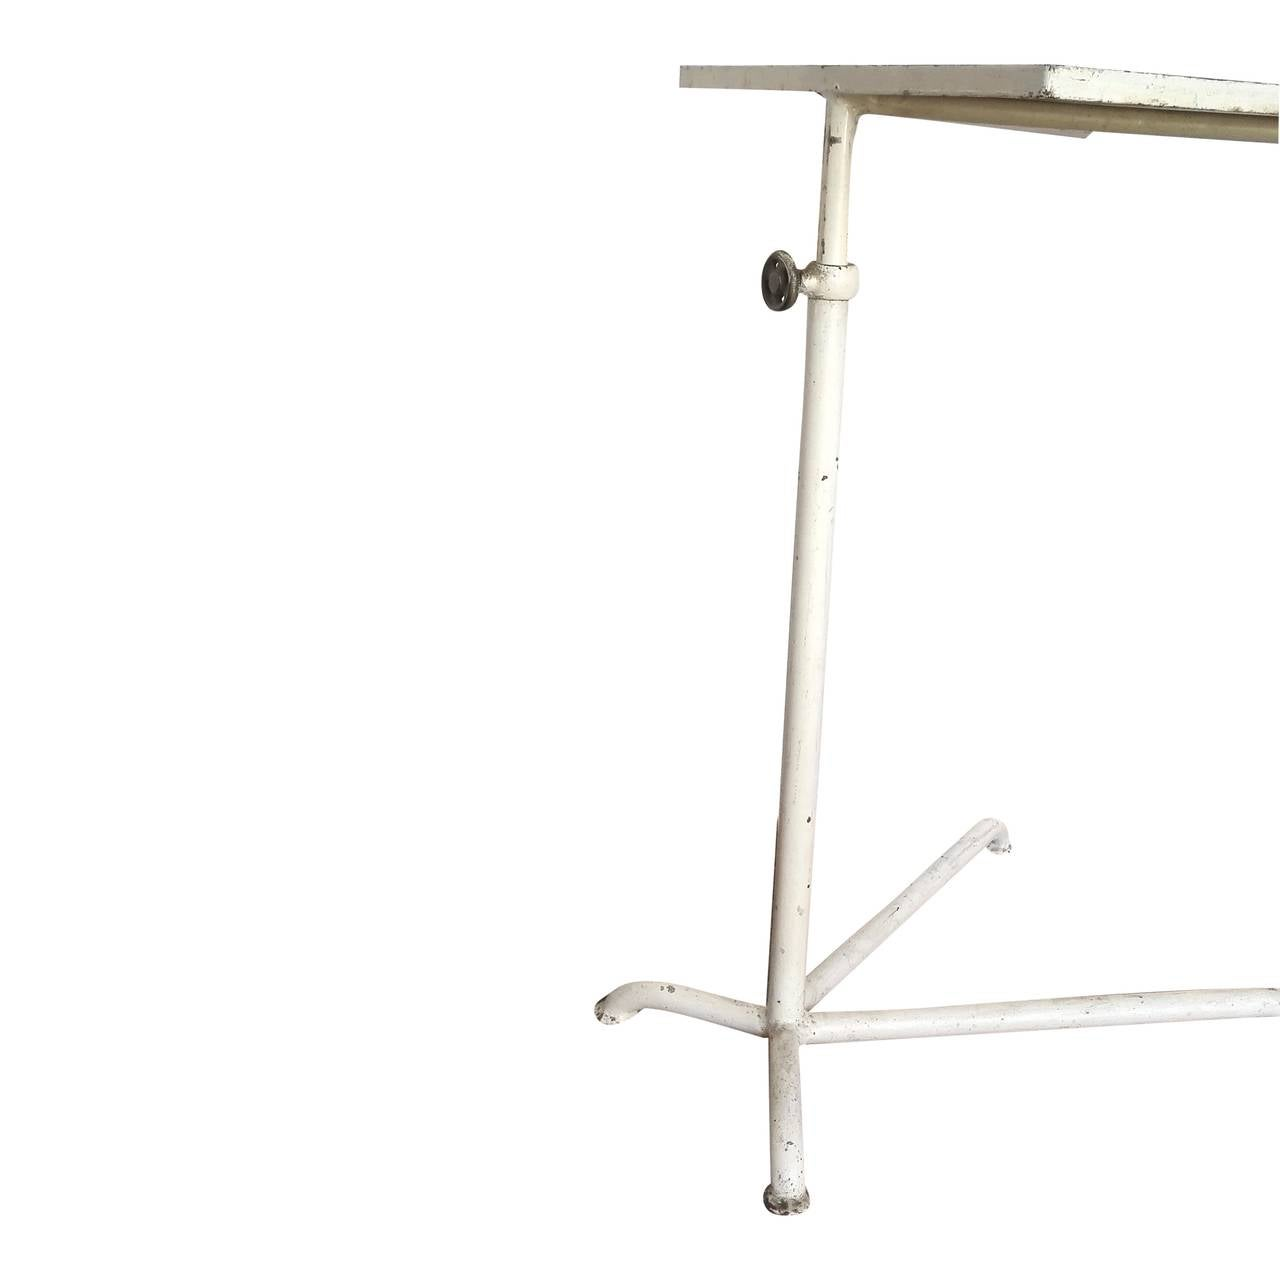 Awesome Adjustable Height Side Table Stevieawardsjapan